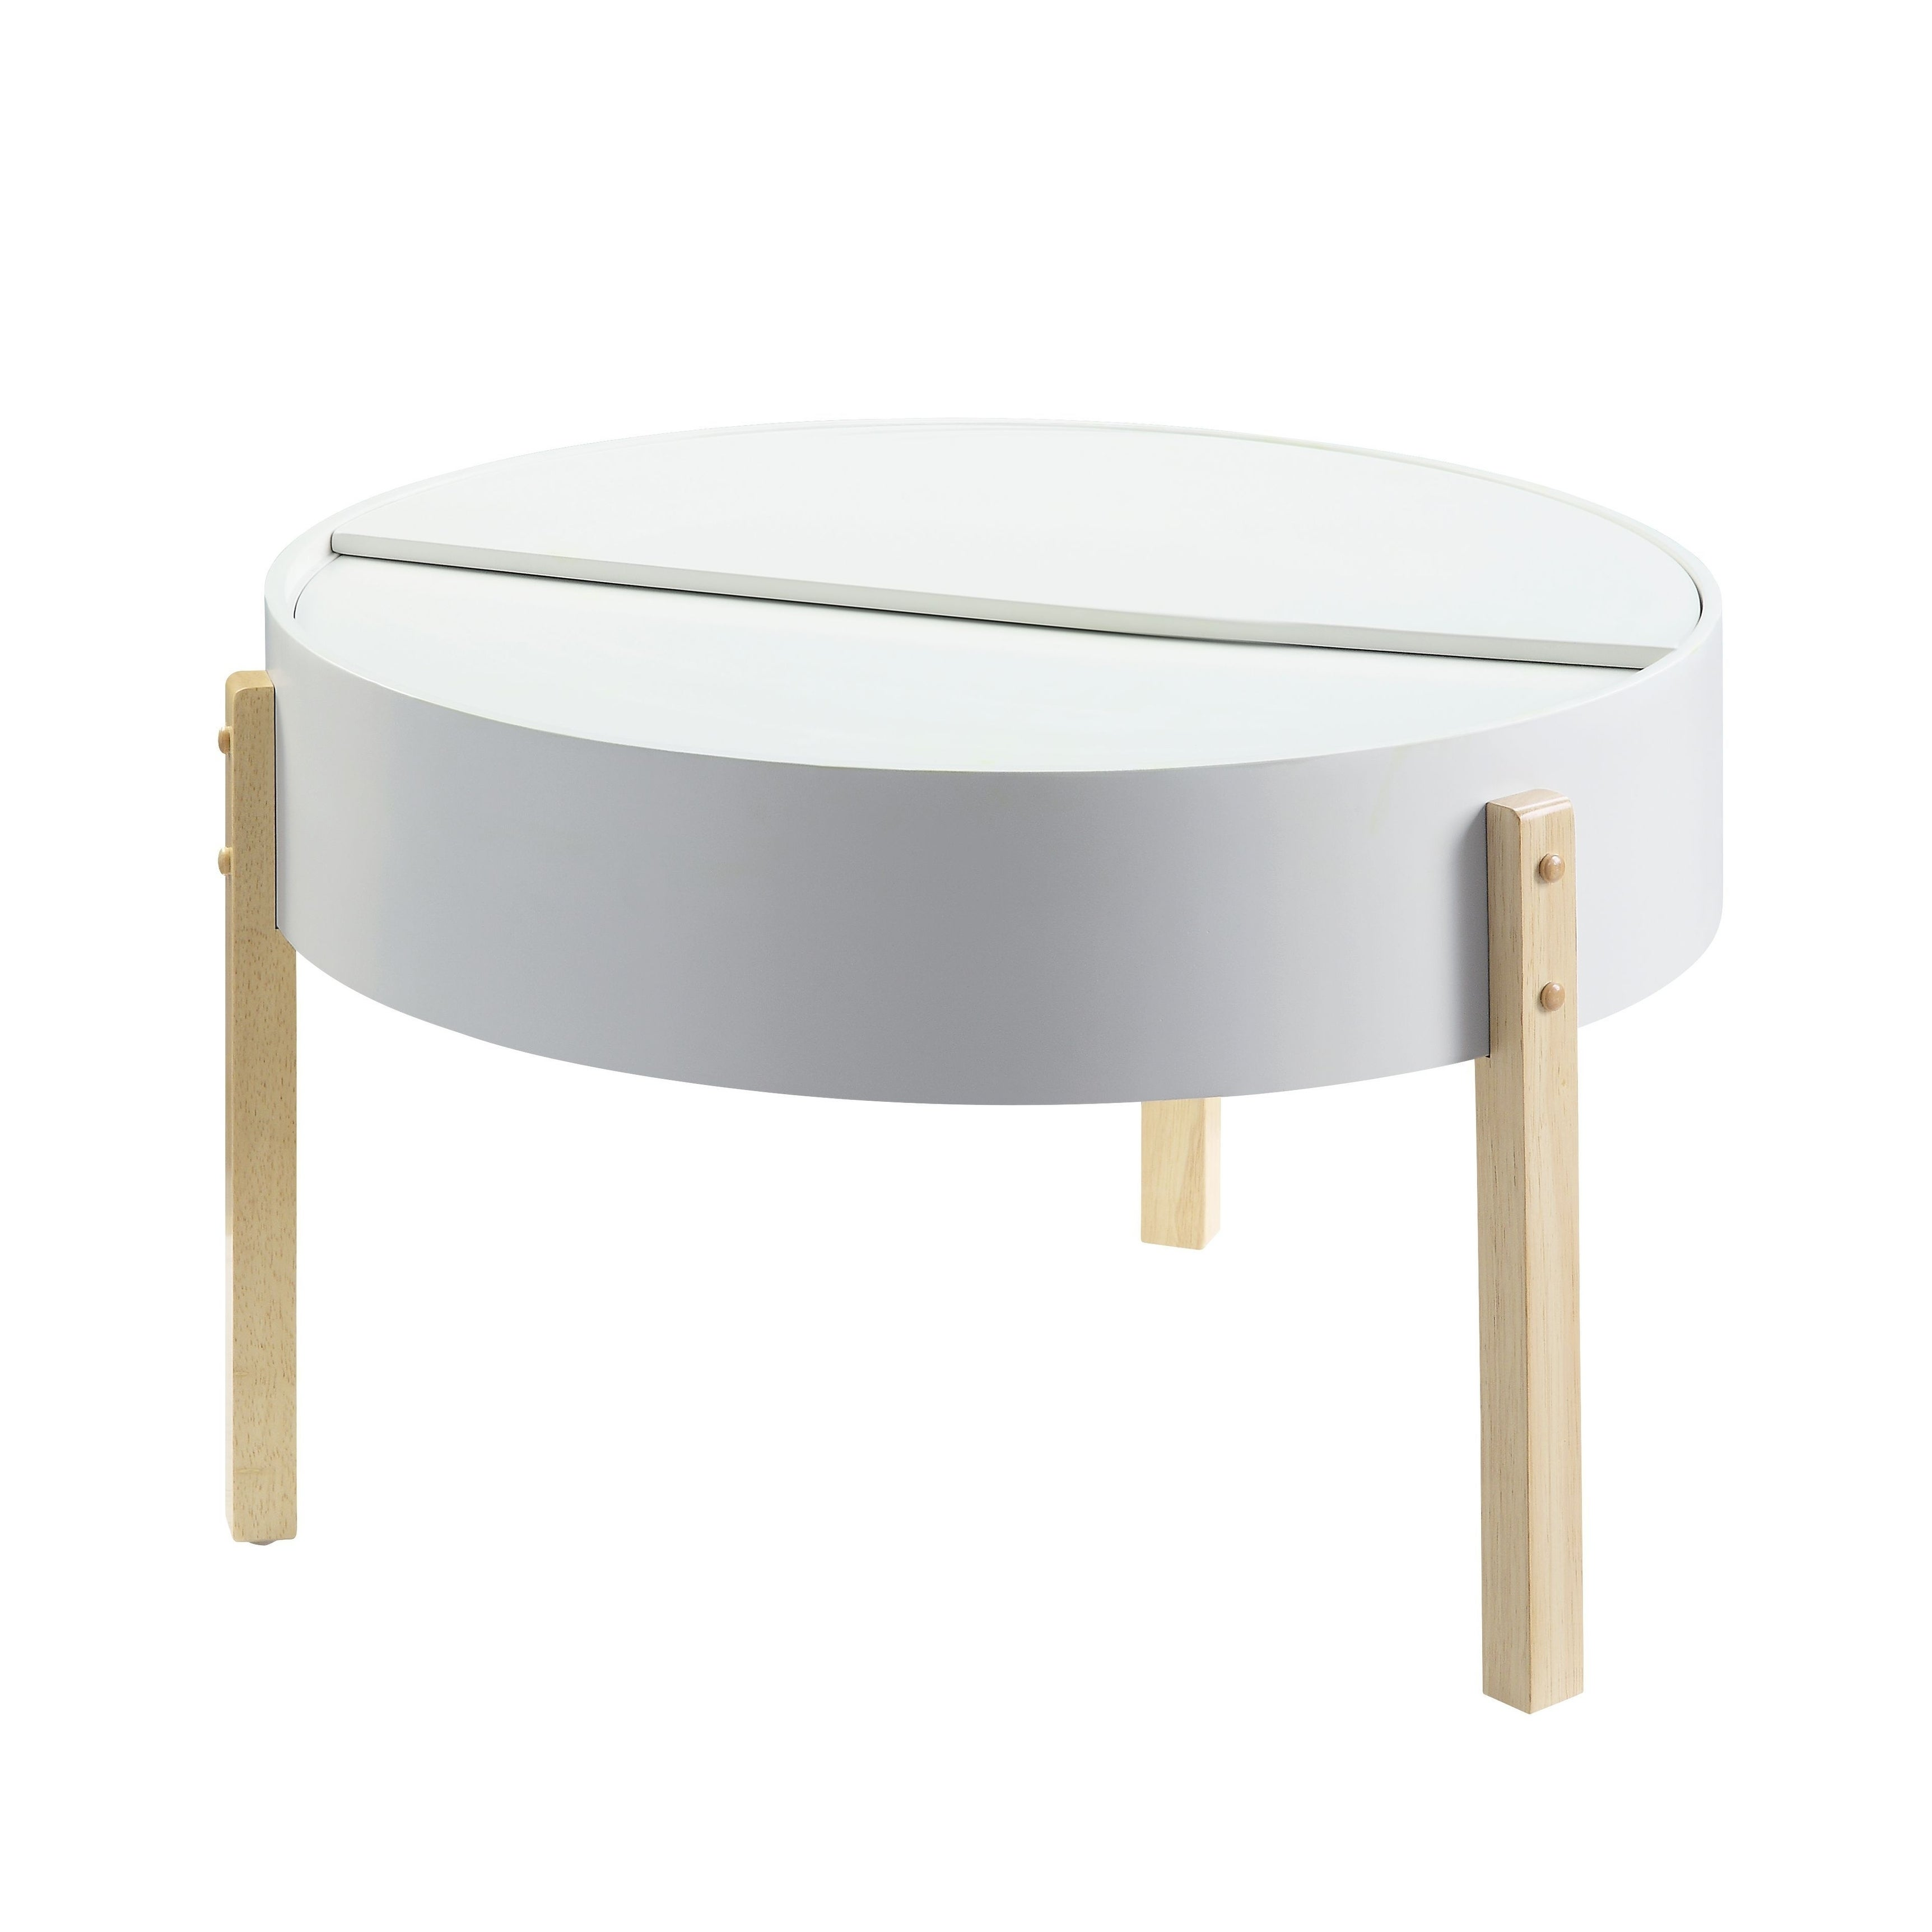 Round Wooden Coffee Table With Hidden Storage White And Brown On Sale Overstock 30968298